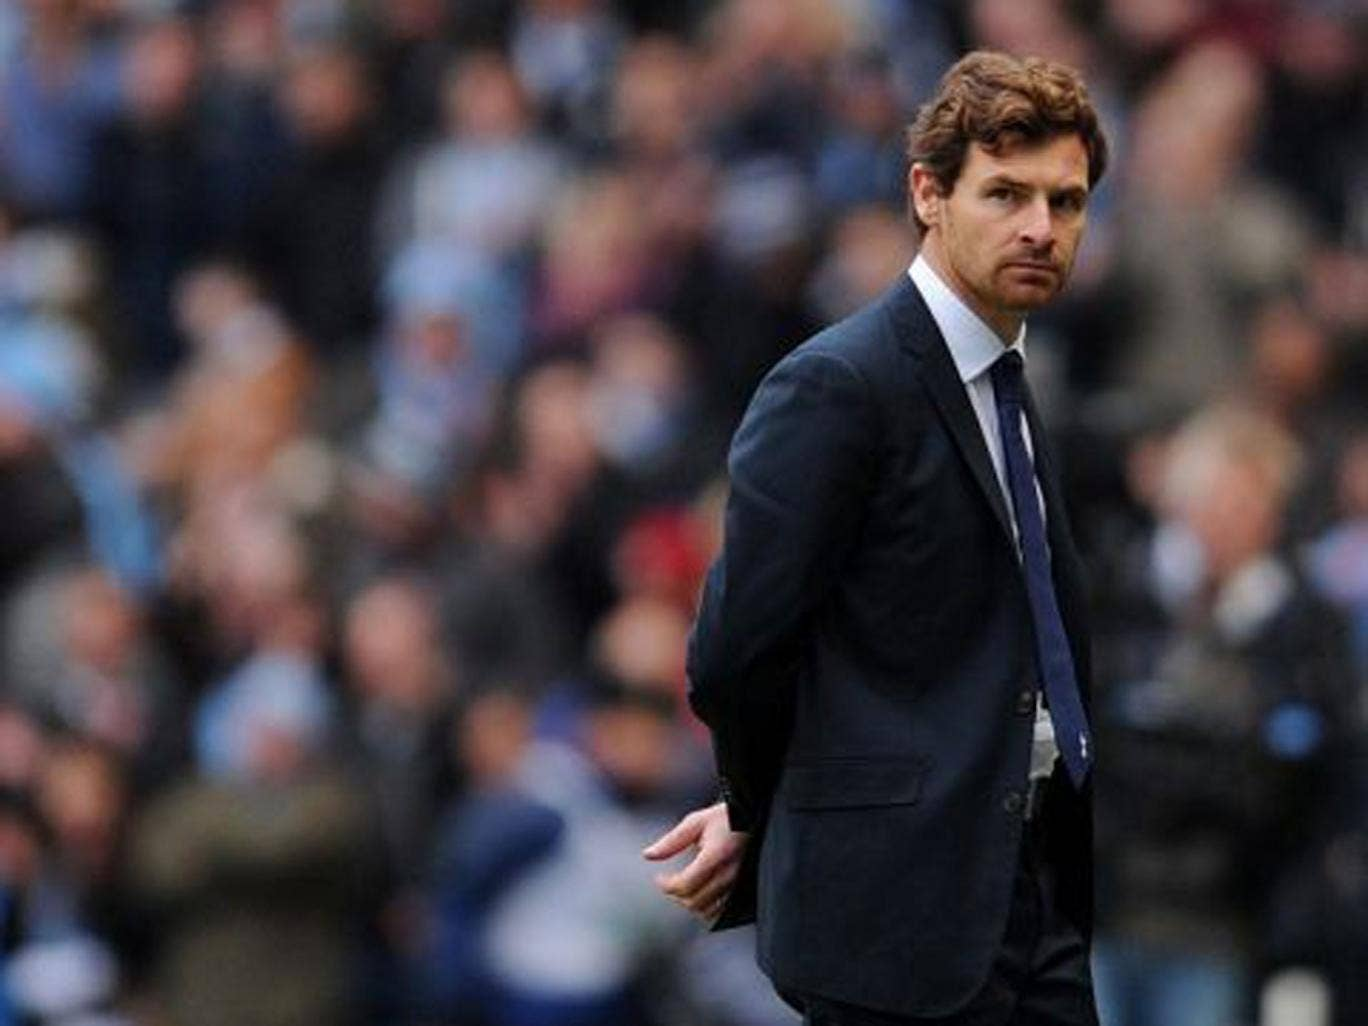 Tottenham are undergoing an existential crisis in the wake of the dismissal of Andre Villas-Boas